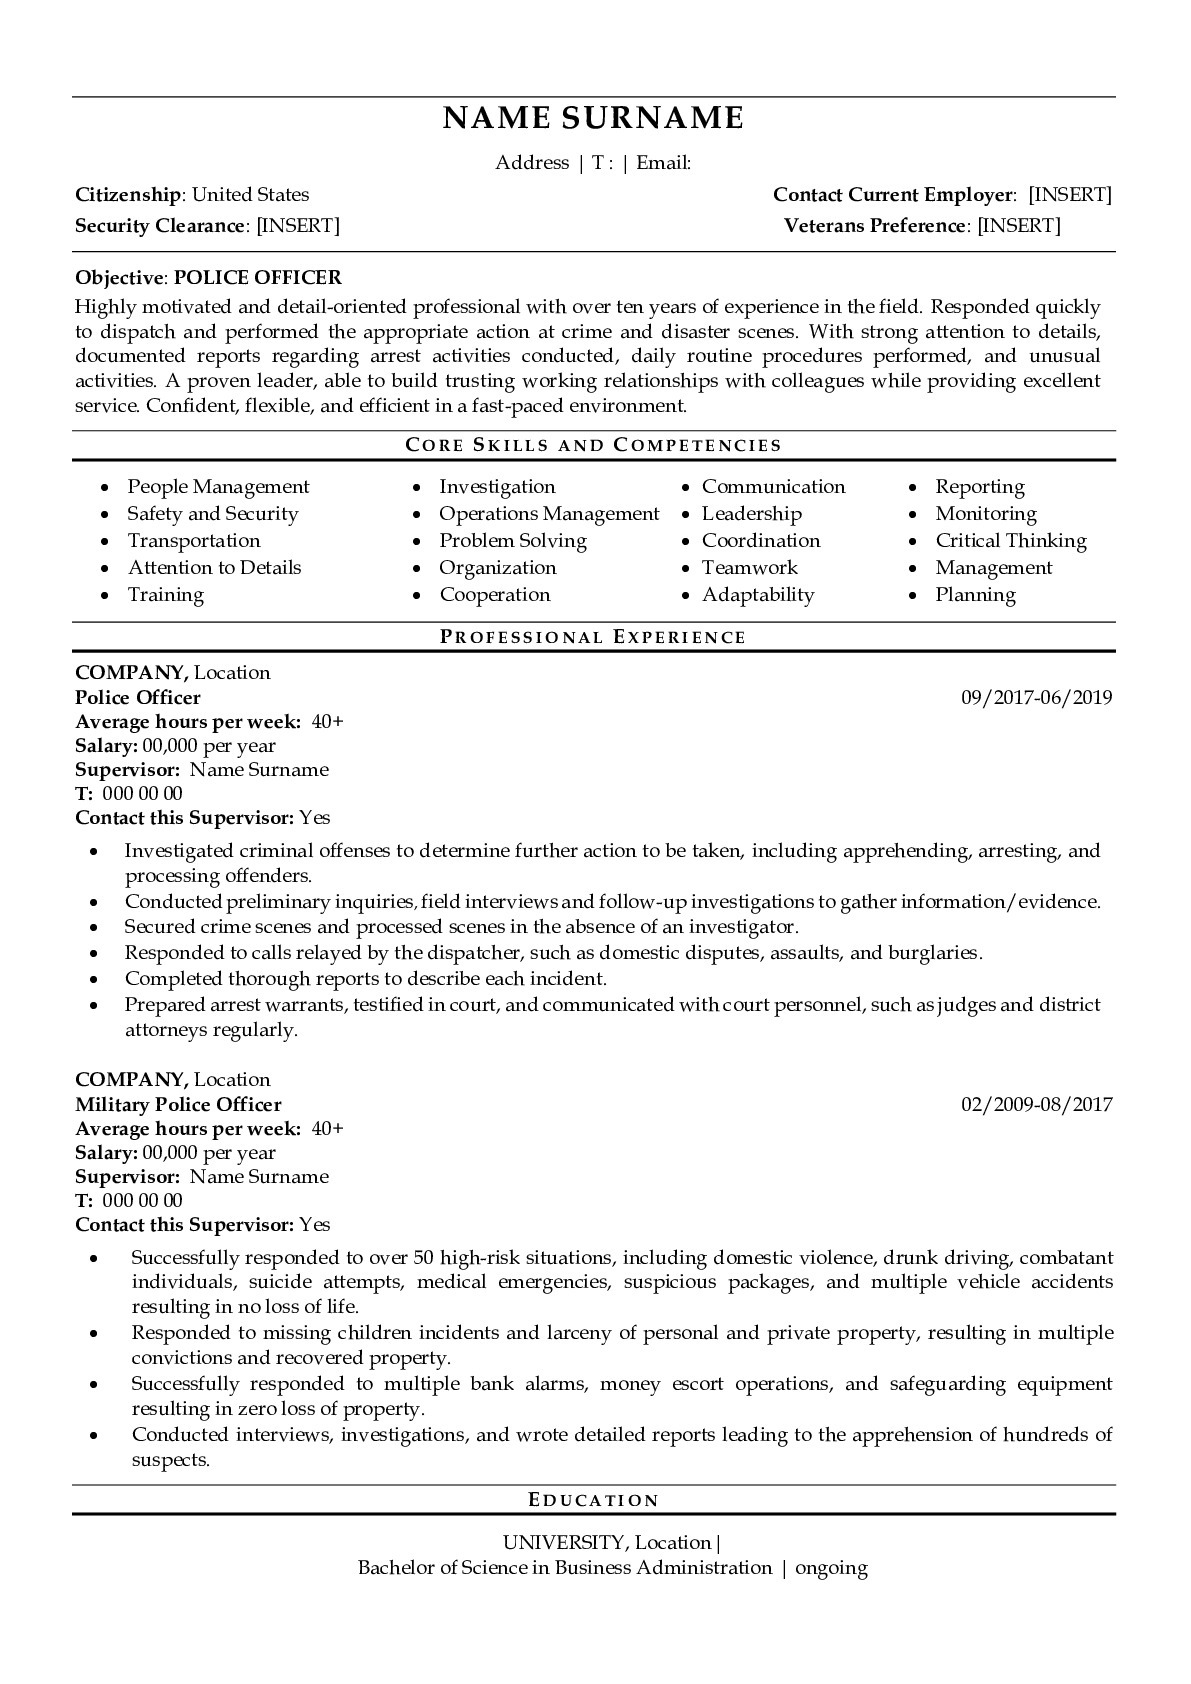 Resume Example for Police Officer